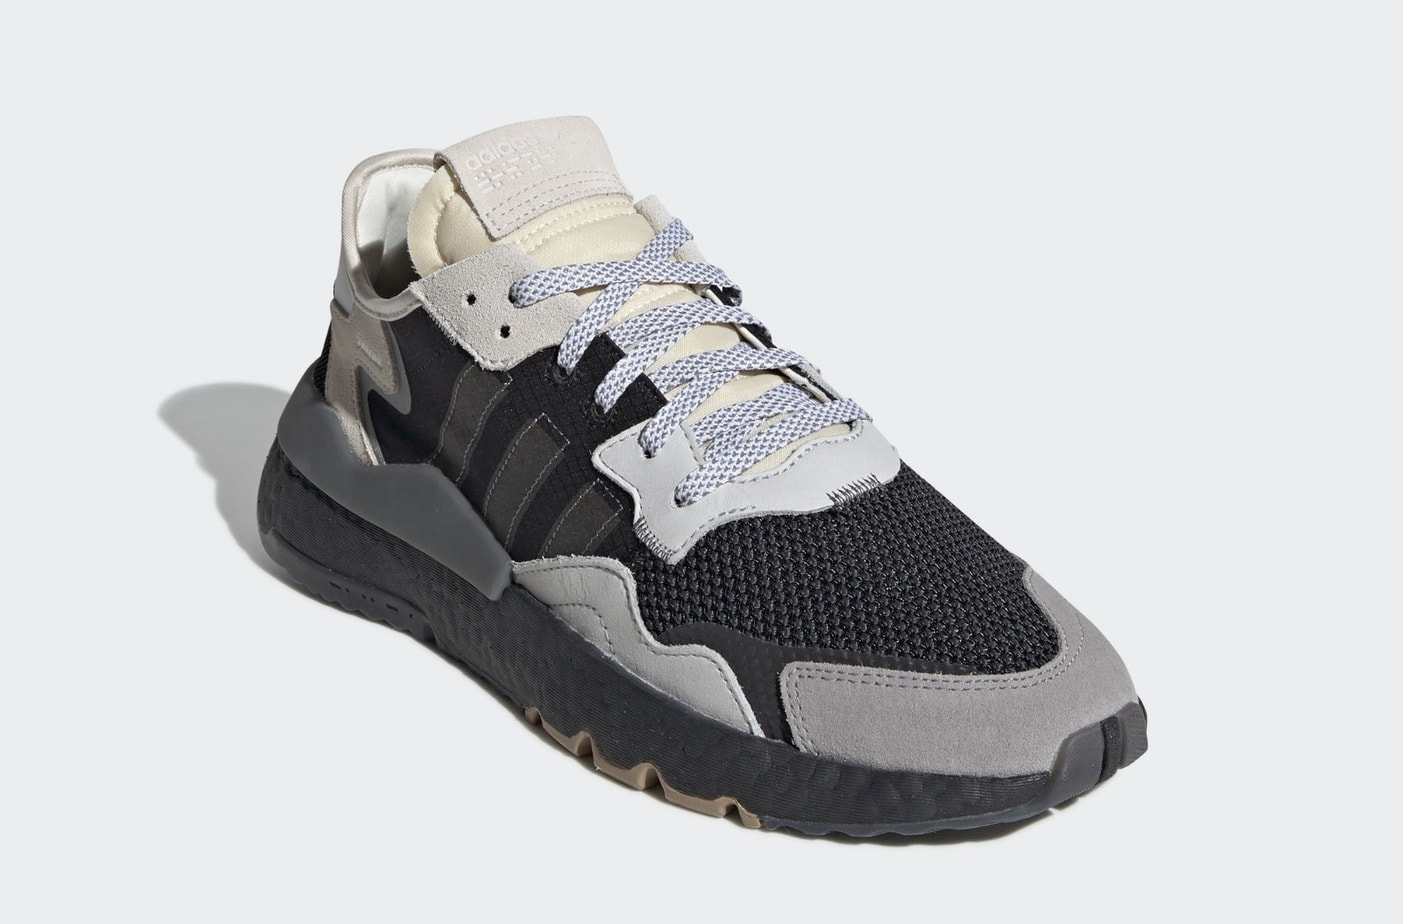 new styles 7549c 64392 adidas Nite Jogger Release Date  February, 2019. Price   140. Color  Core  Black Carbon FTWR White Style Code  BD7933